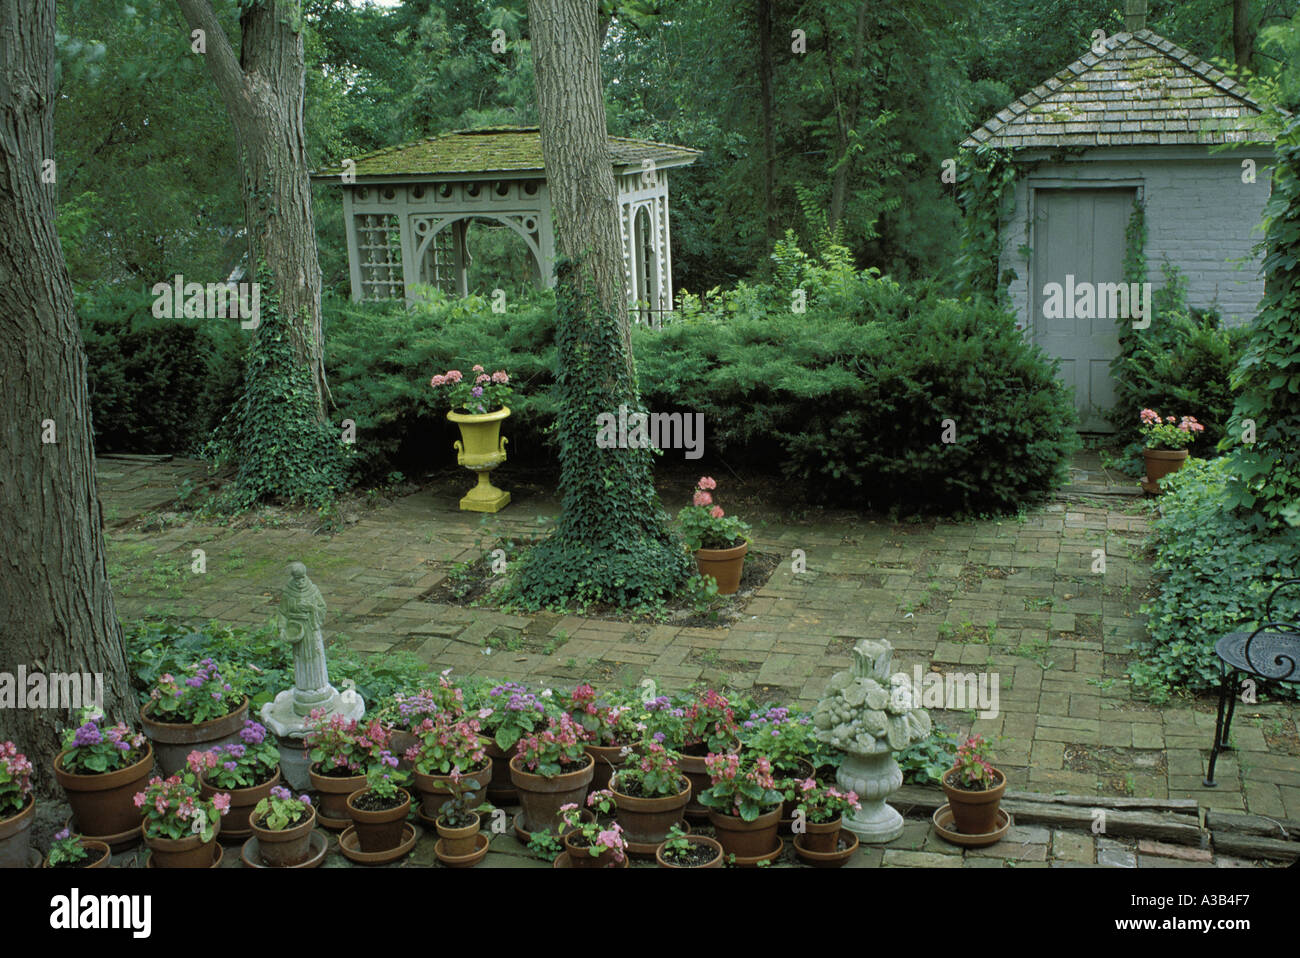 Antique Brick Patio With Gazebo And Shed Decorated With Statuary, Pots Of  Flowers Boston Ivy